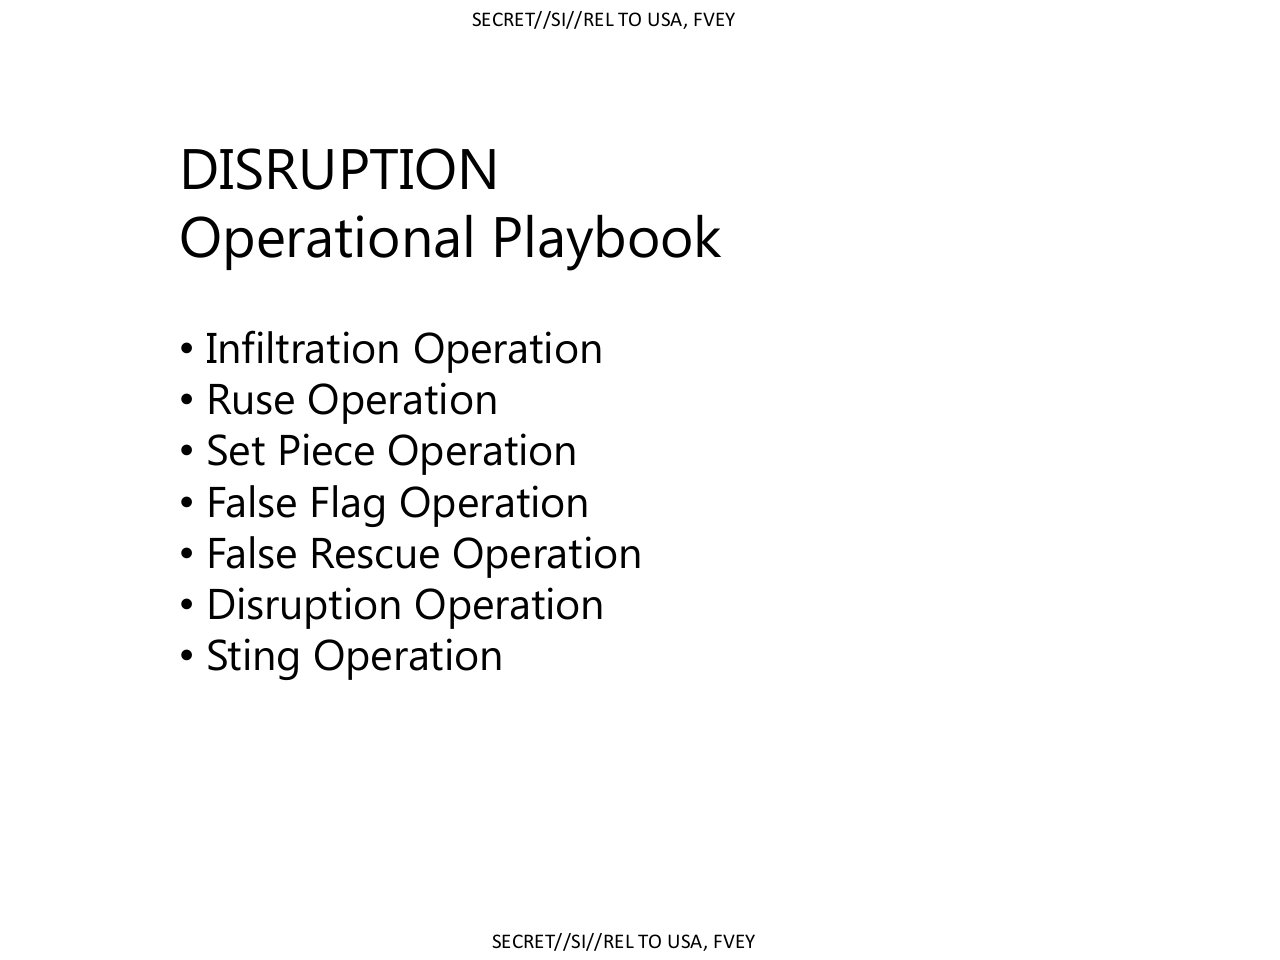 Disruption Tactics